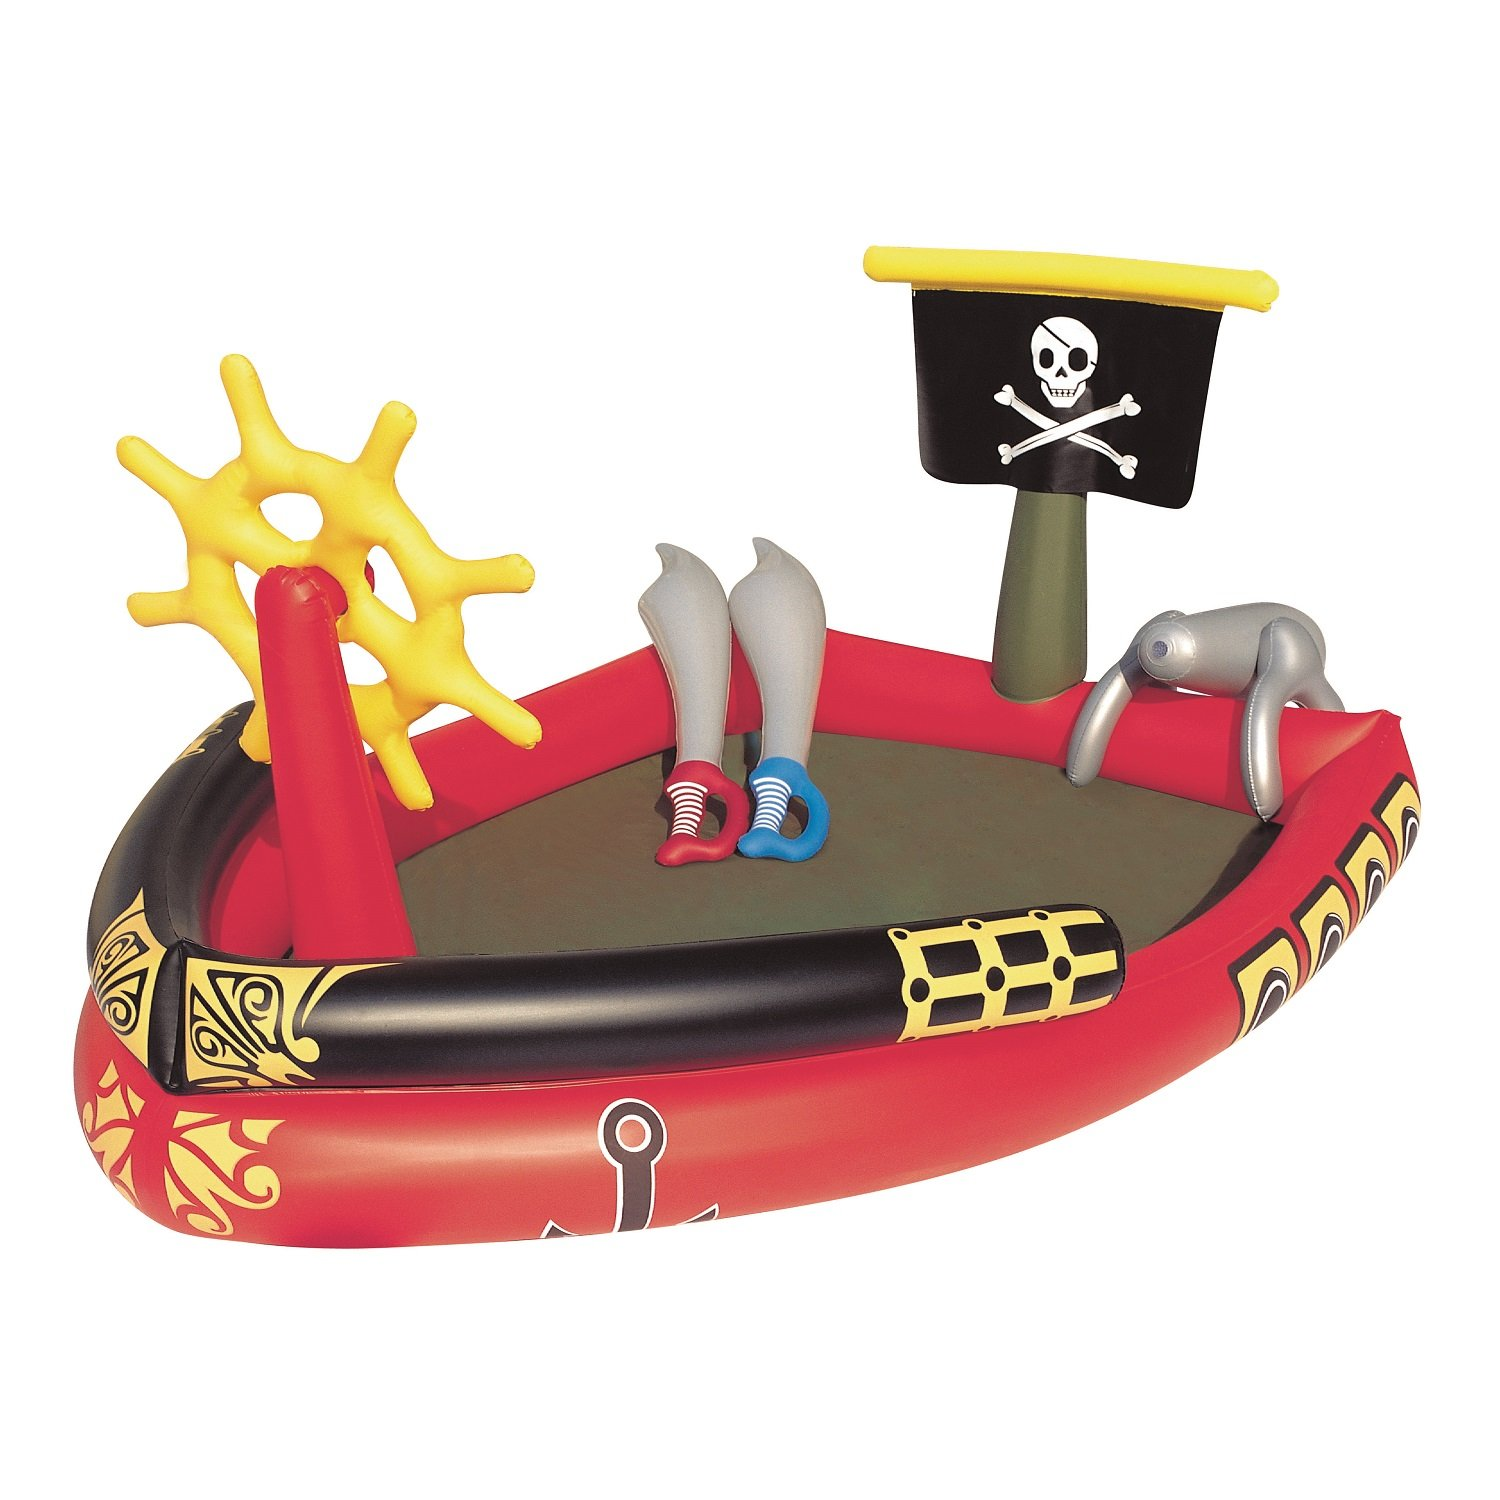 H2OGO! Pirate Play Center Inflatable Pool by Bestway